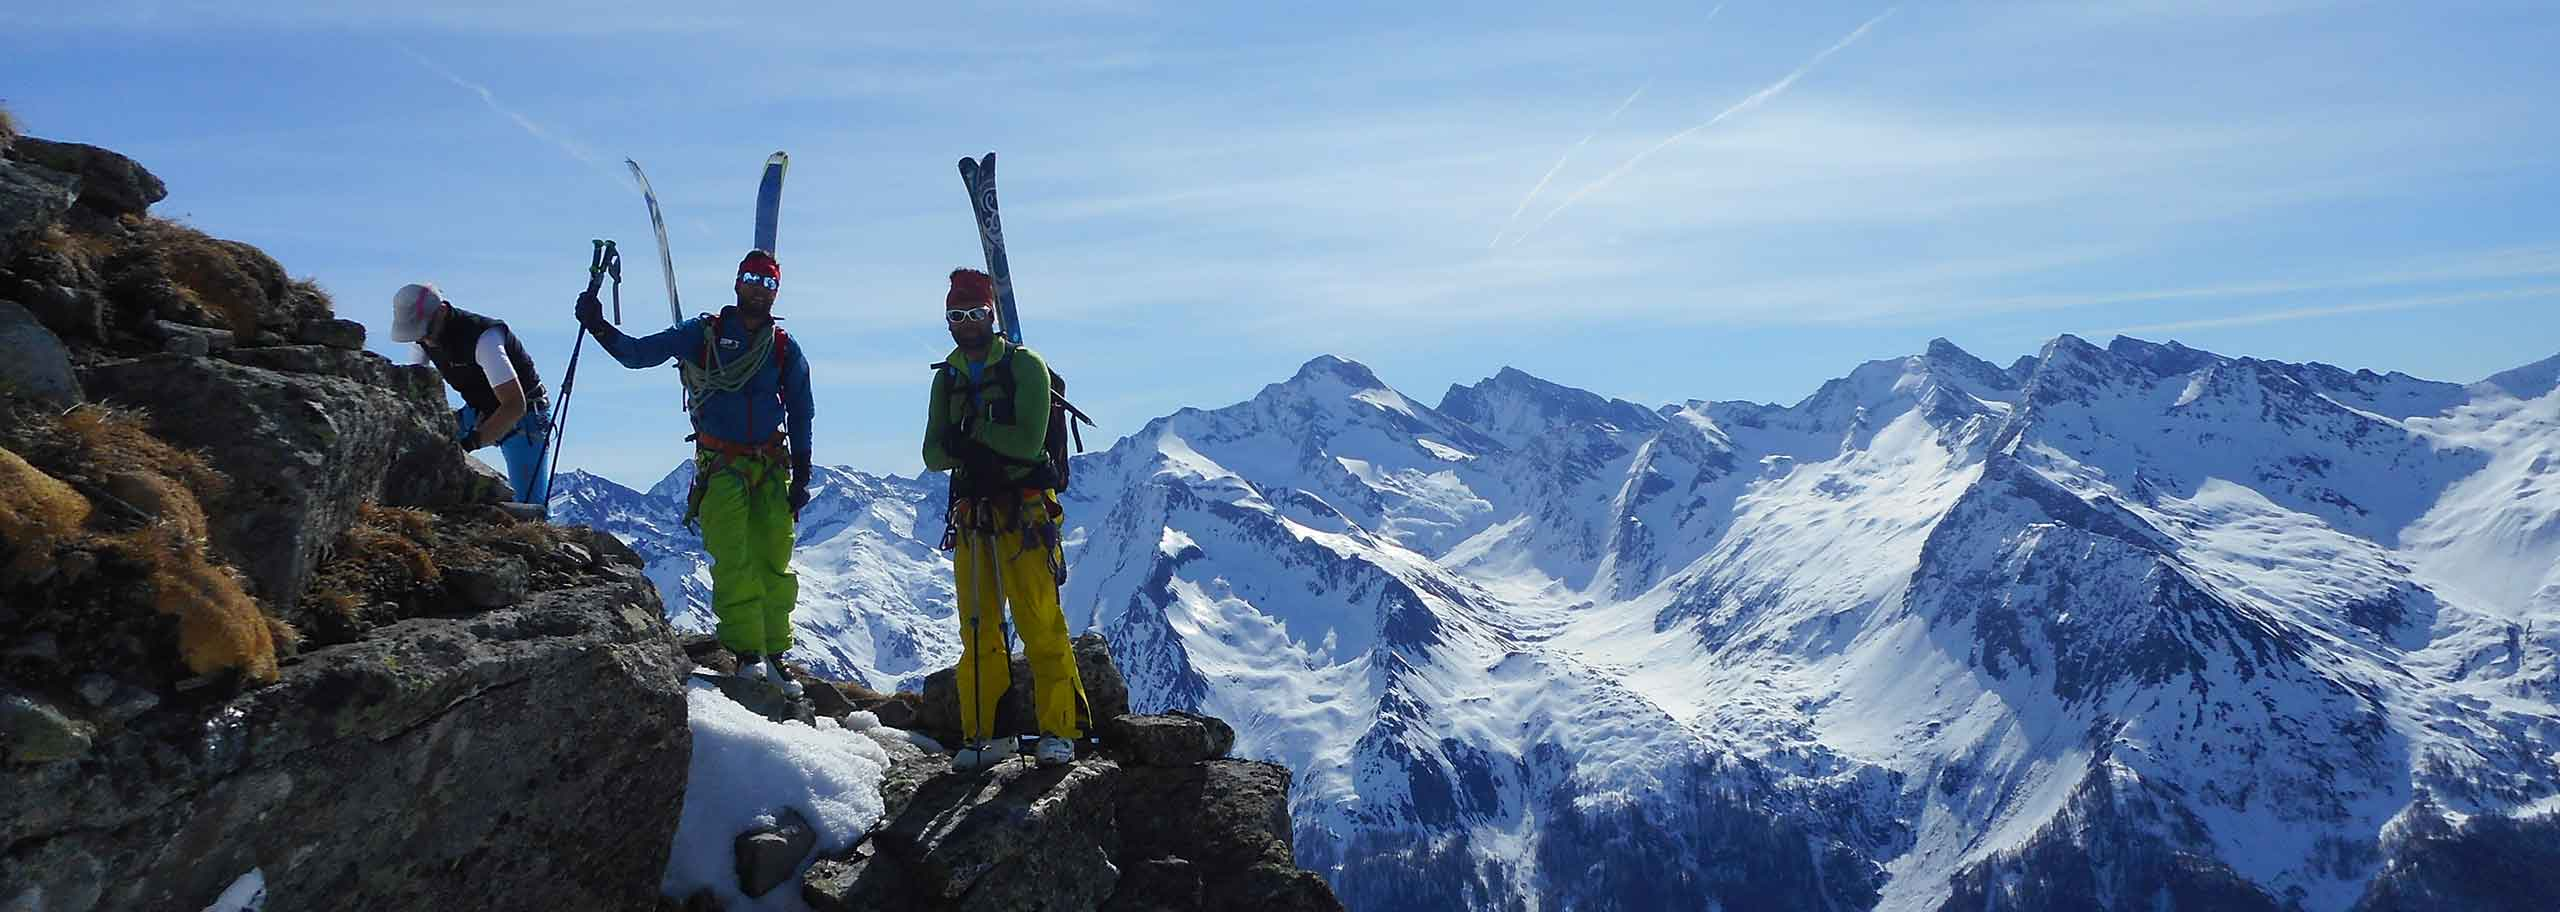 Ski Mountaineering with a Mountain Guide in Valle Aurina and Valle di Tures